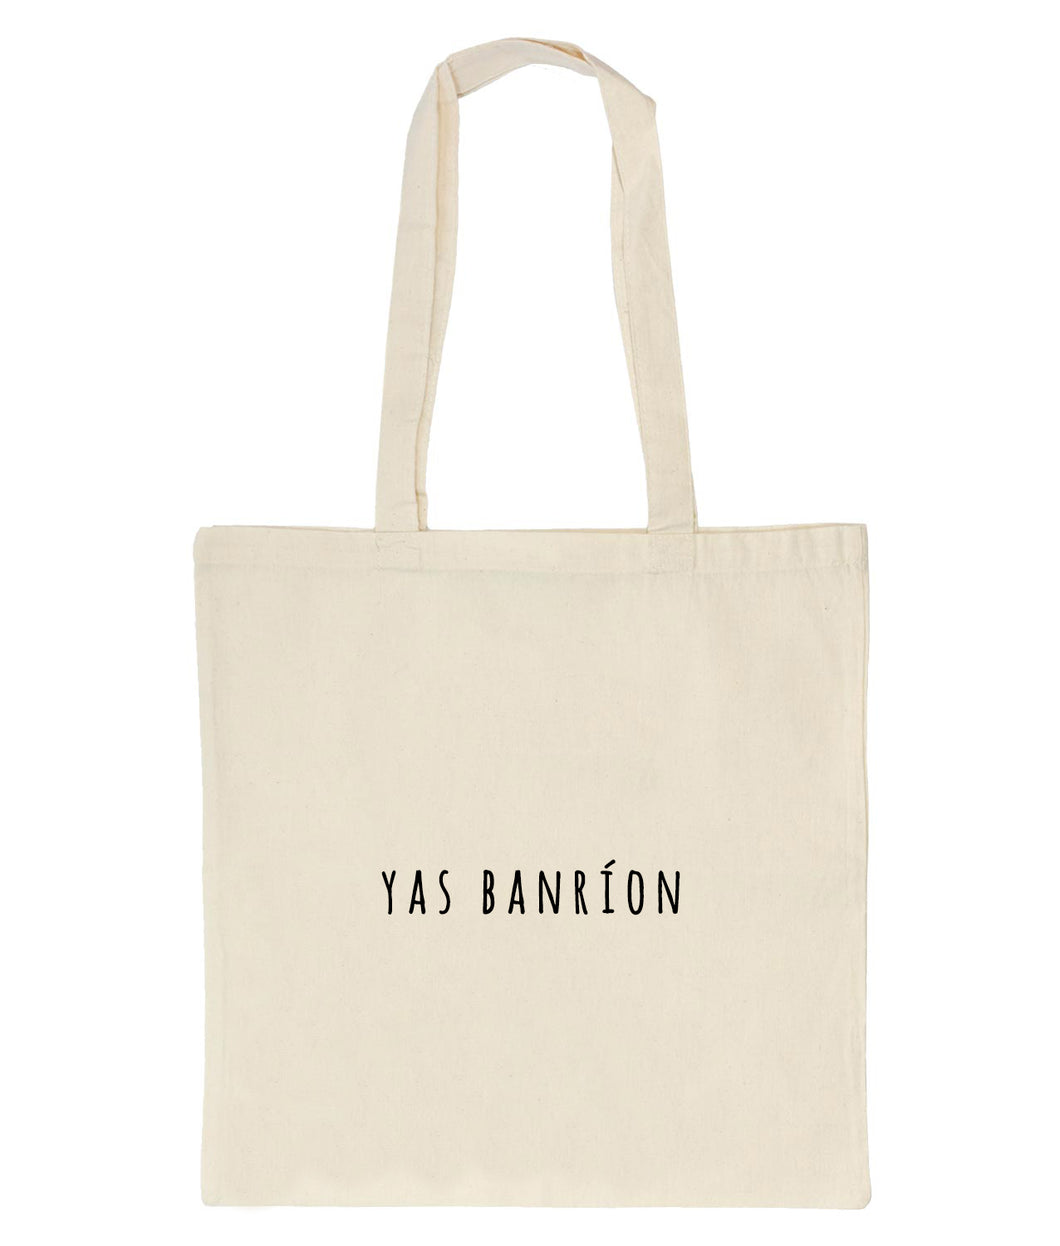 Yas Banríon: Organic Cotton Tote Bag - Beanantees